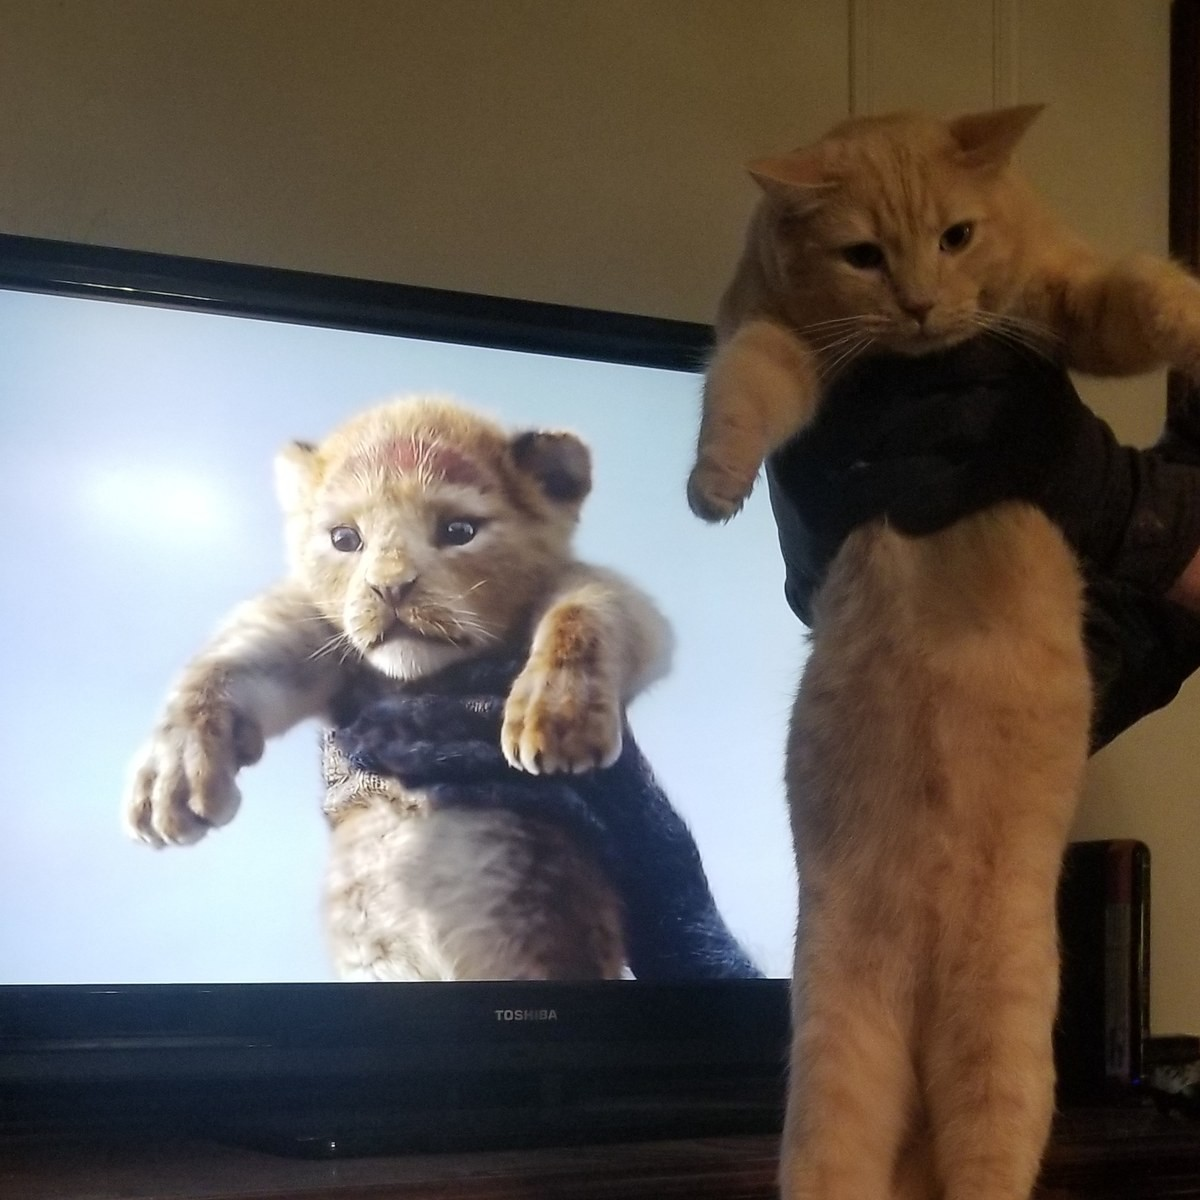 The True Lion King. Everyone post your cats! I know I wasn't the first to do it but I want to see who does it best..